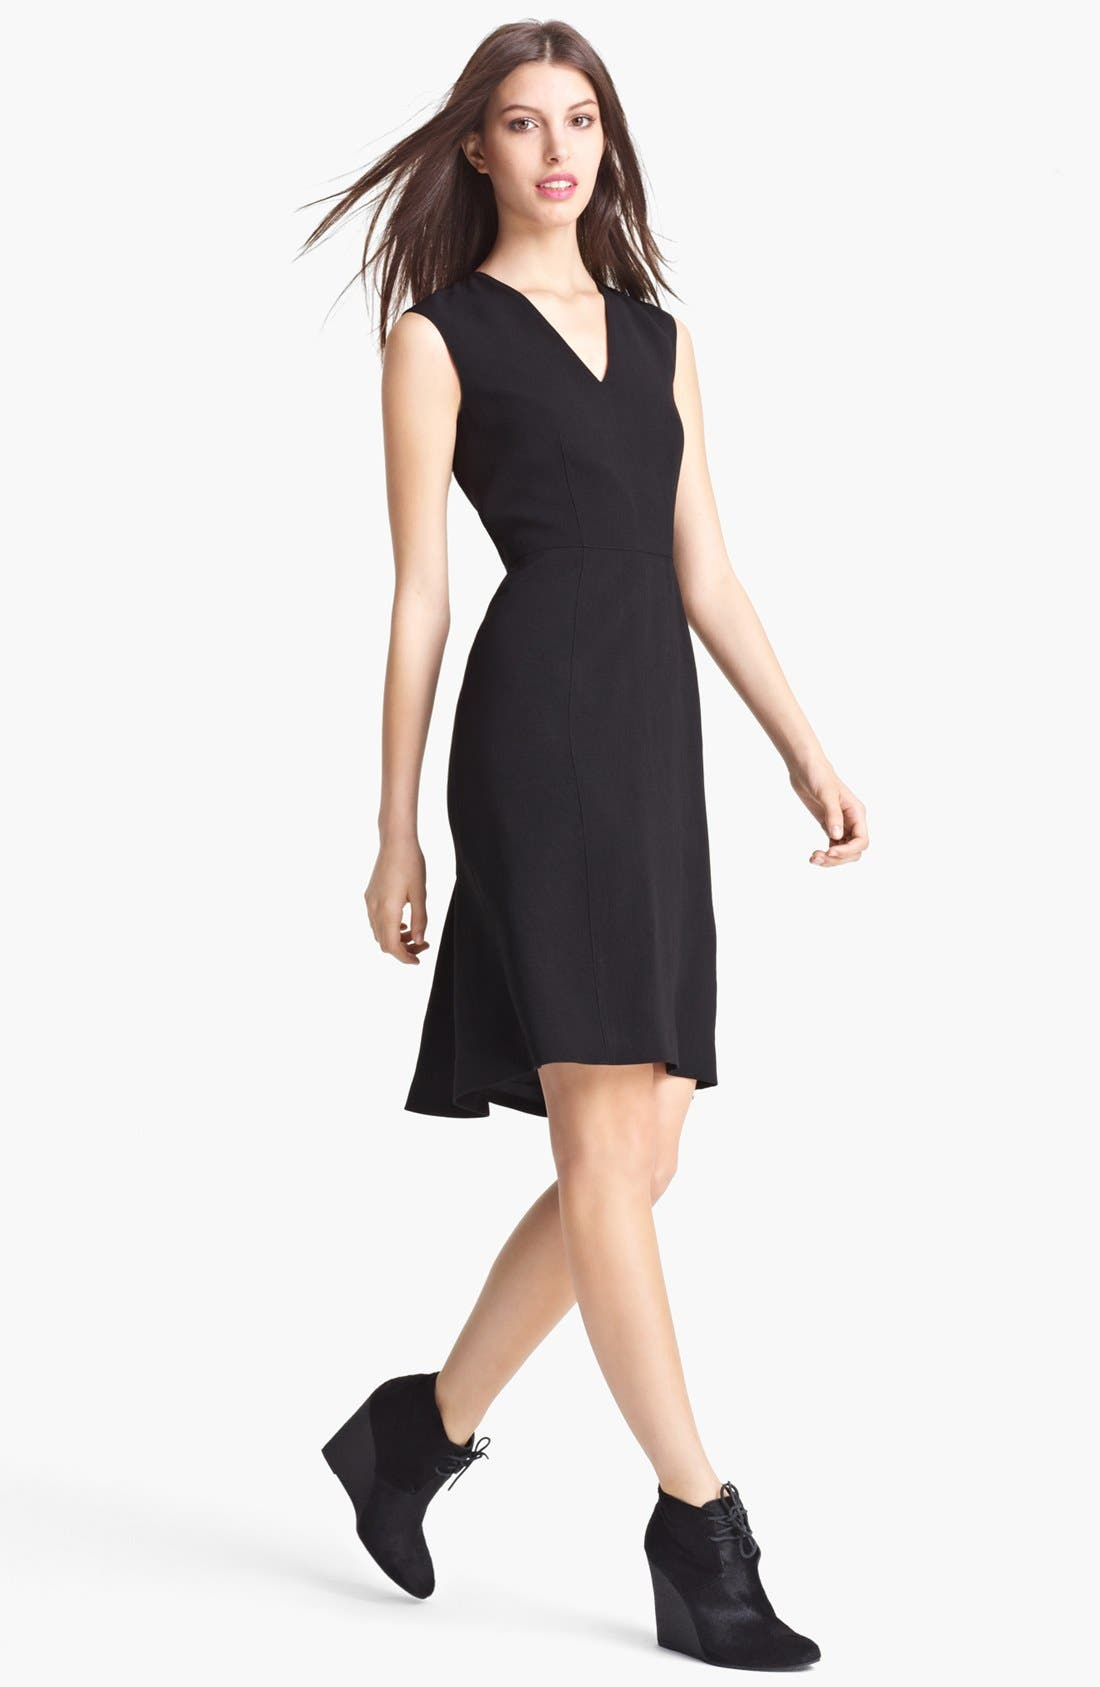 Burberry London Dress & Accessories, Main, color, 001